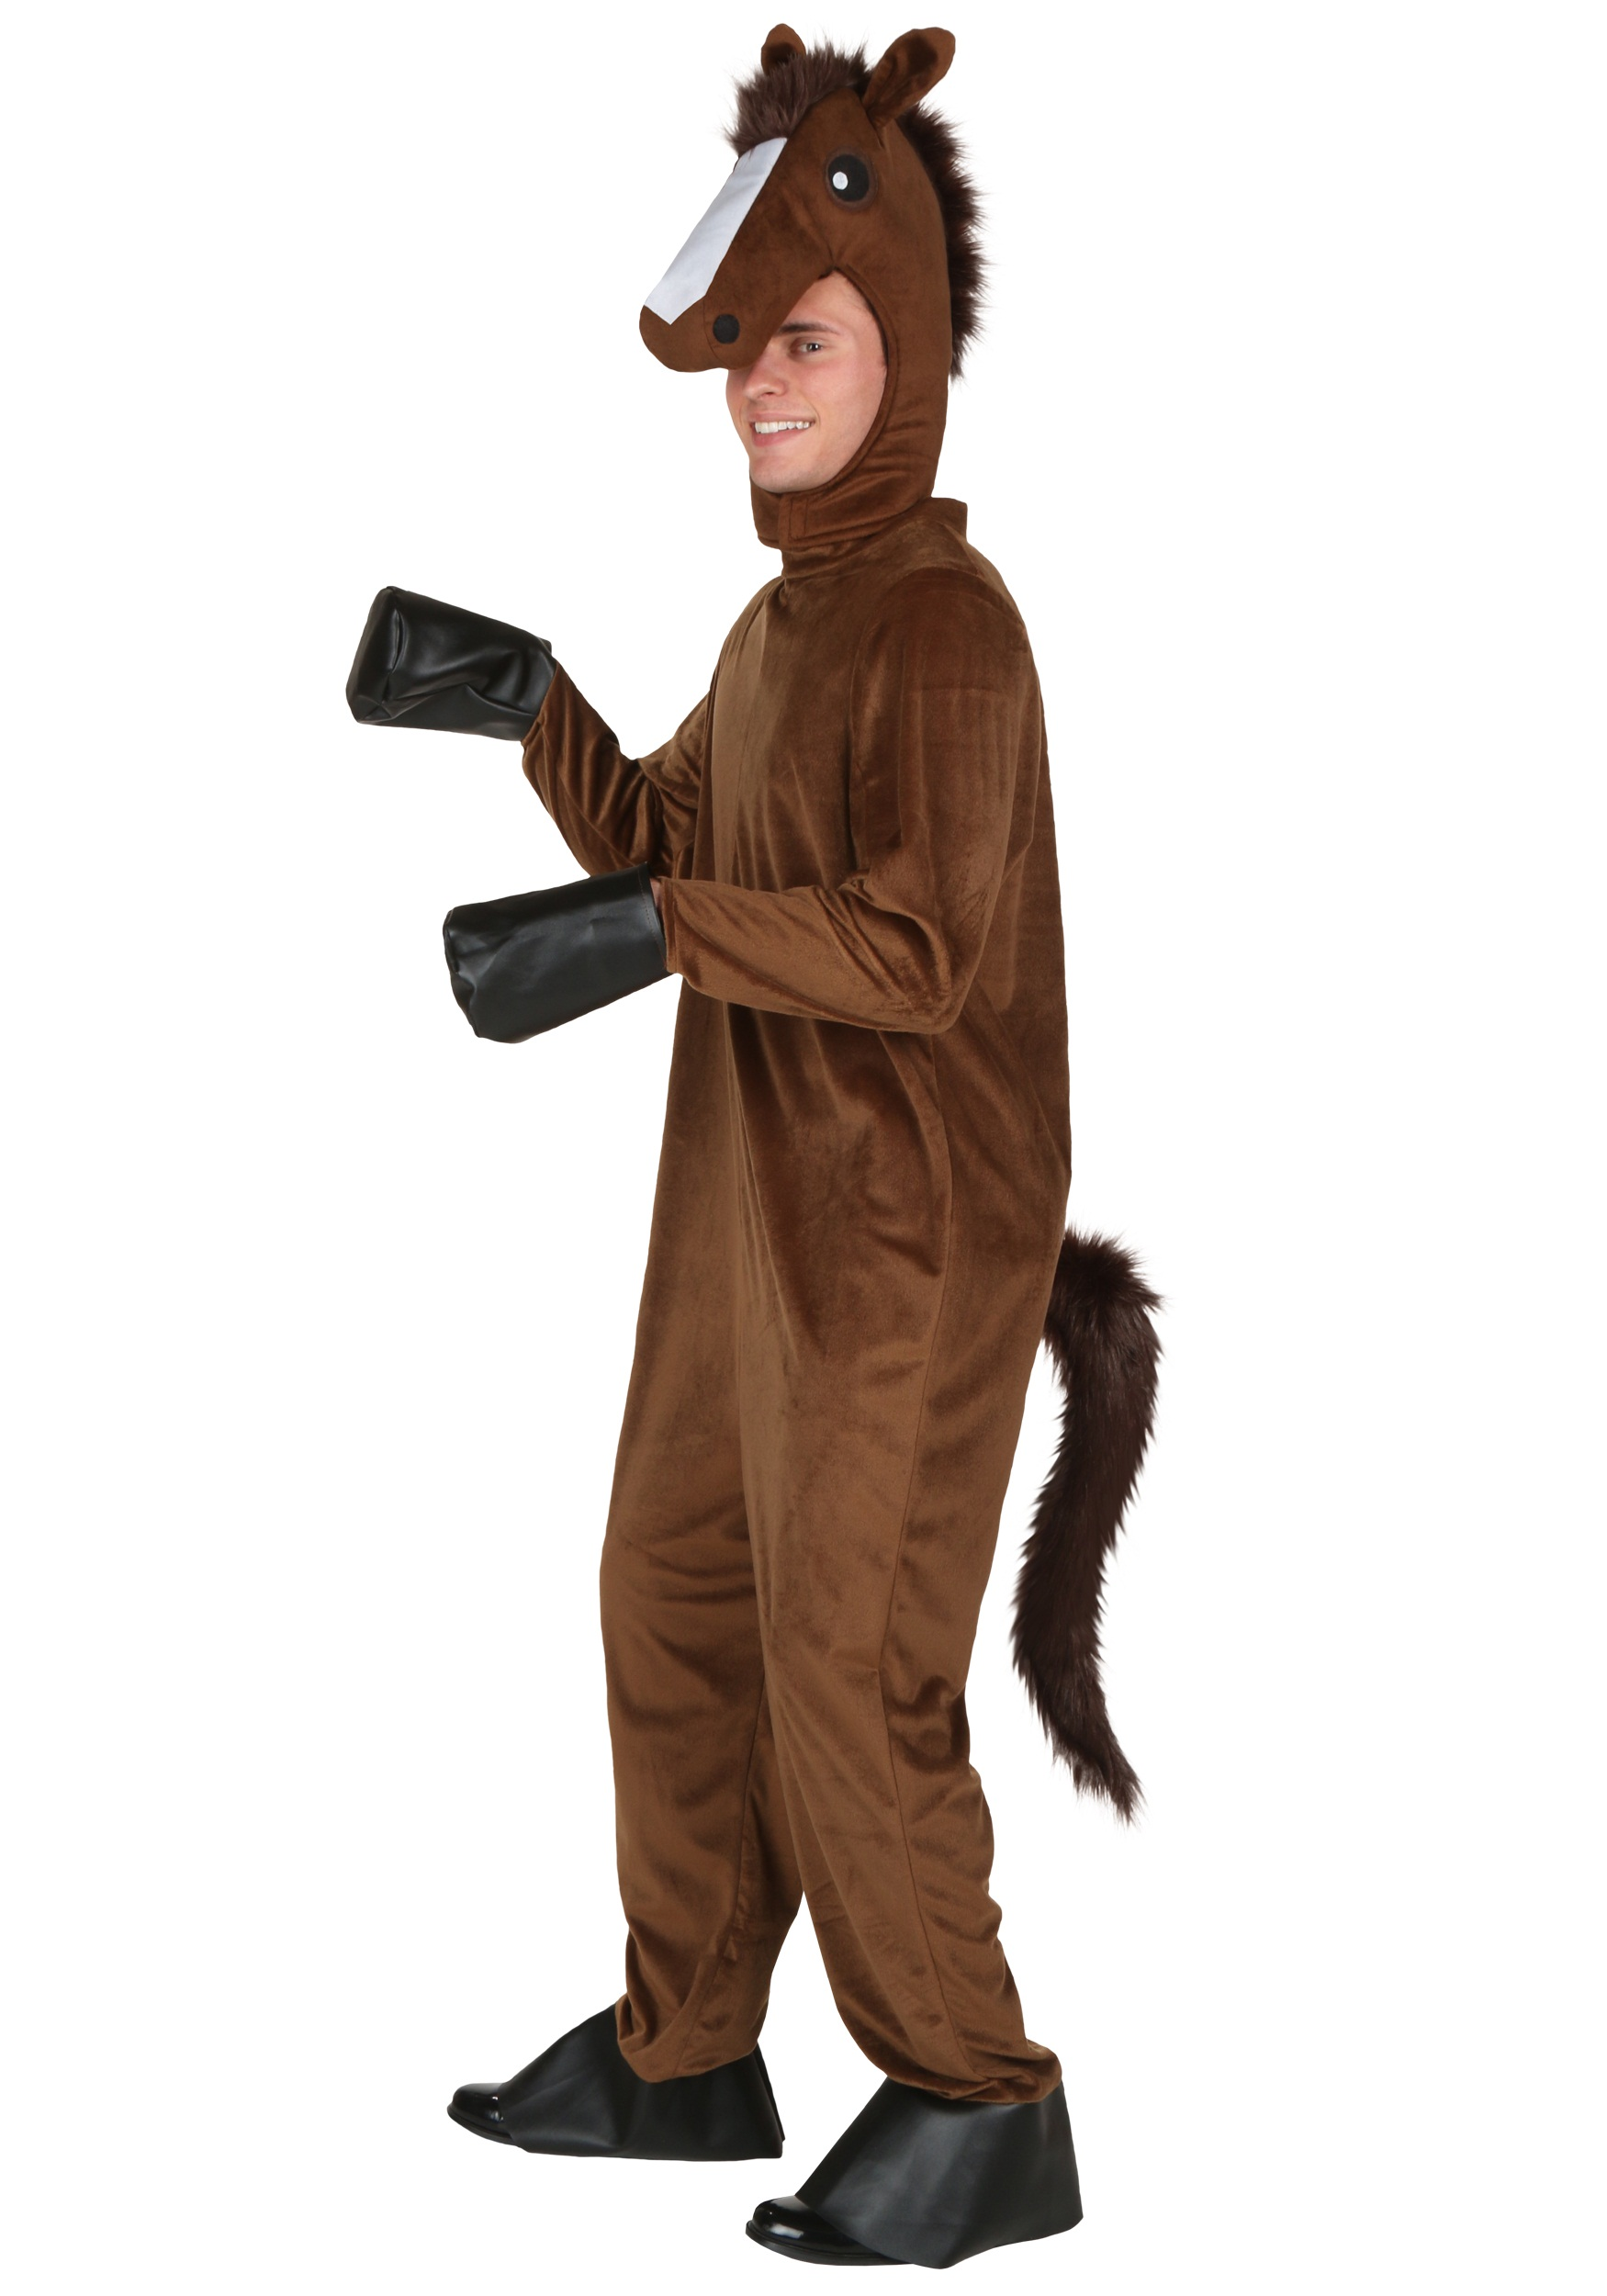 Horse Costume Pattern Adults Exclusive Adult Horse Costume